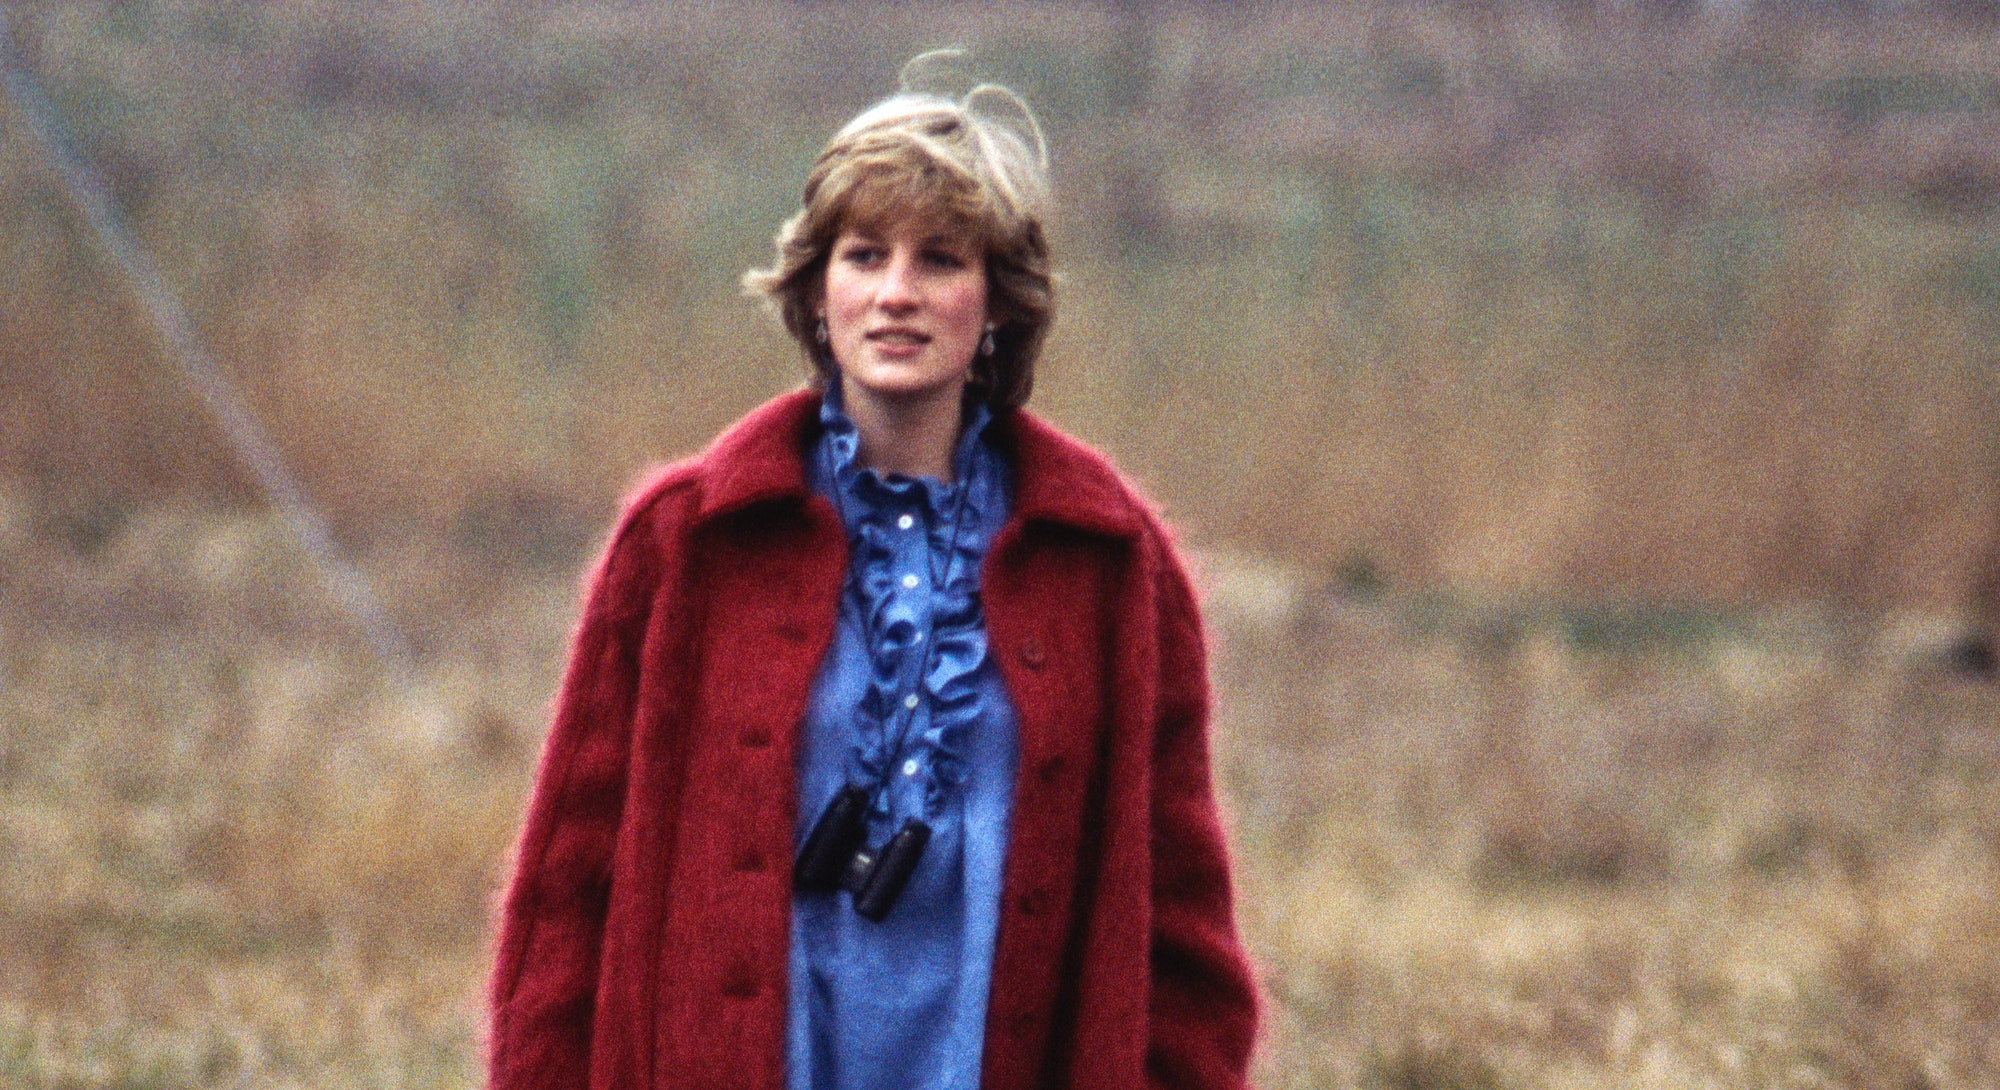 LIVERPOOL, UNITED KINGDOM - APRIL 03: Princess Diana at the Grand National in Aintree while pregnant with her first baby, on April 3, 1982. (Photo by David Levenson/Getty Images)